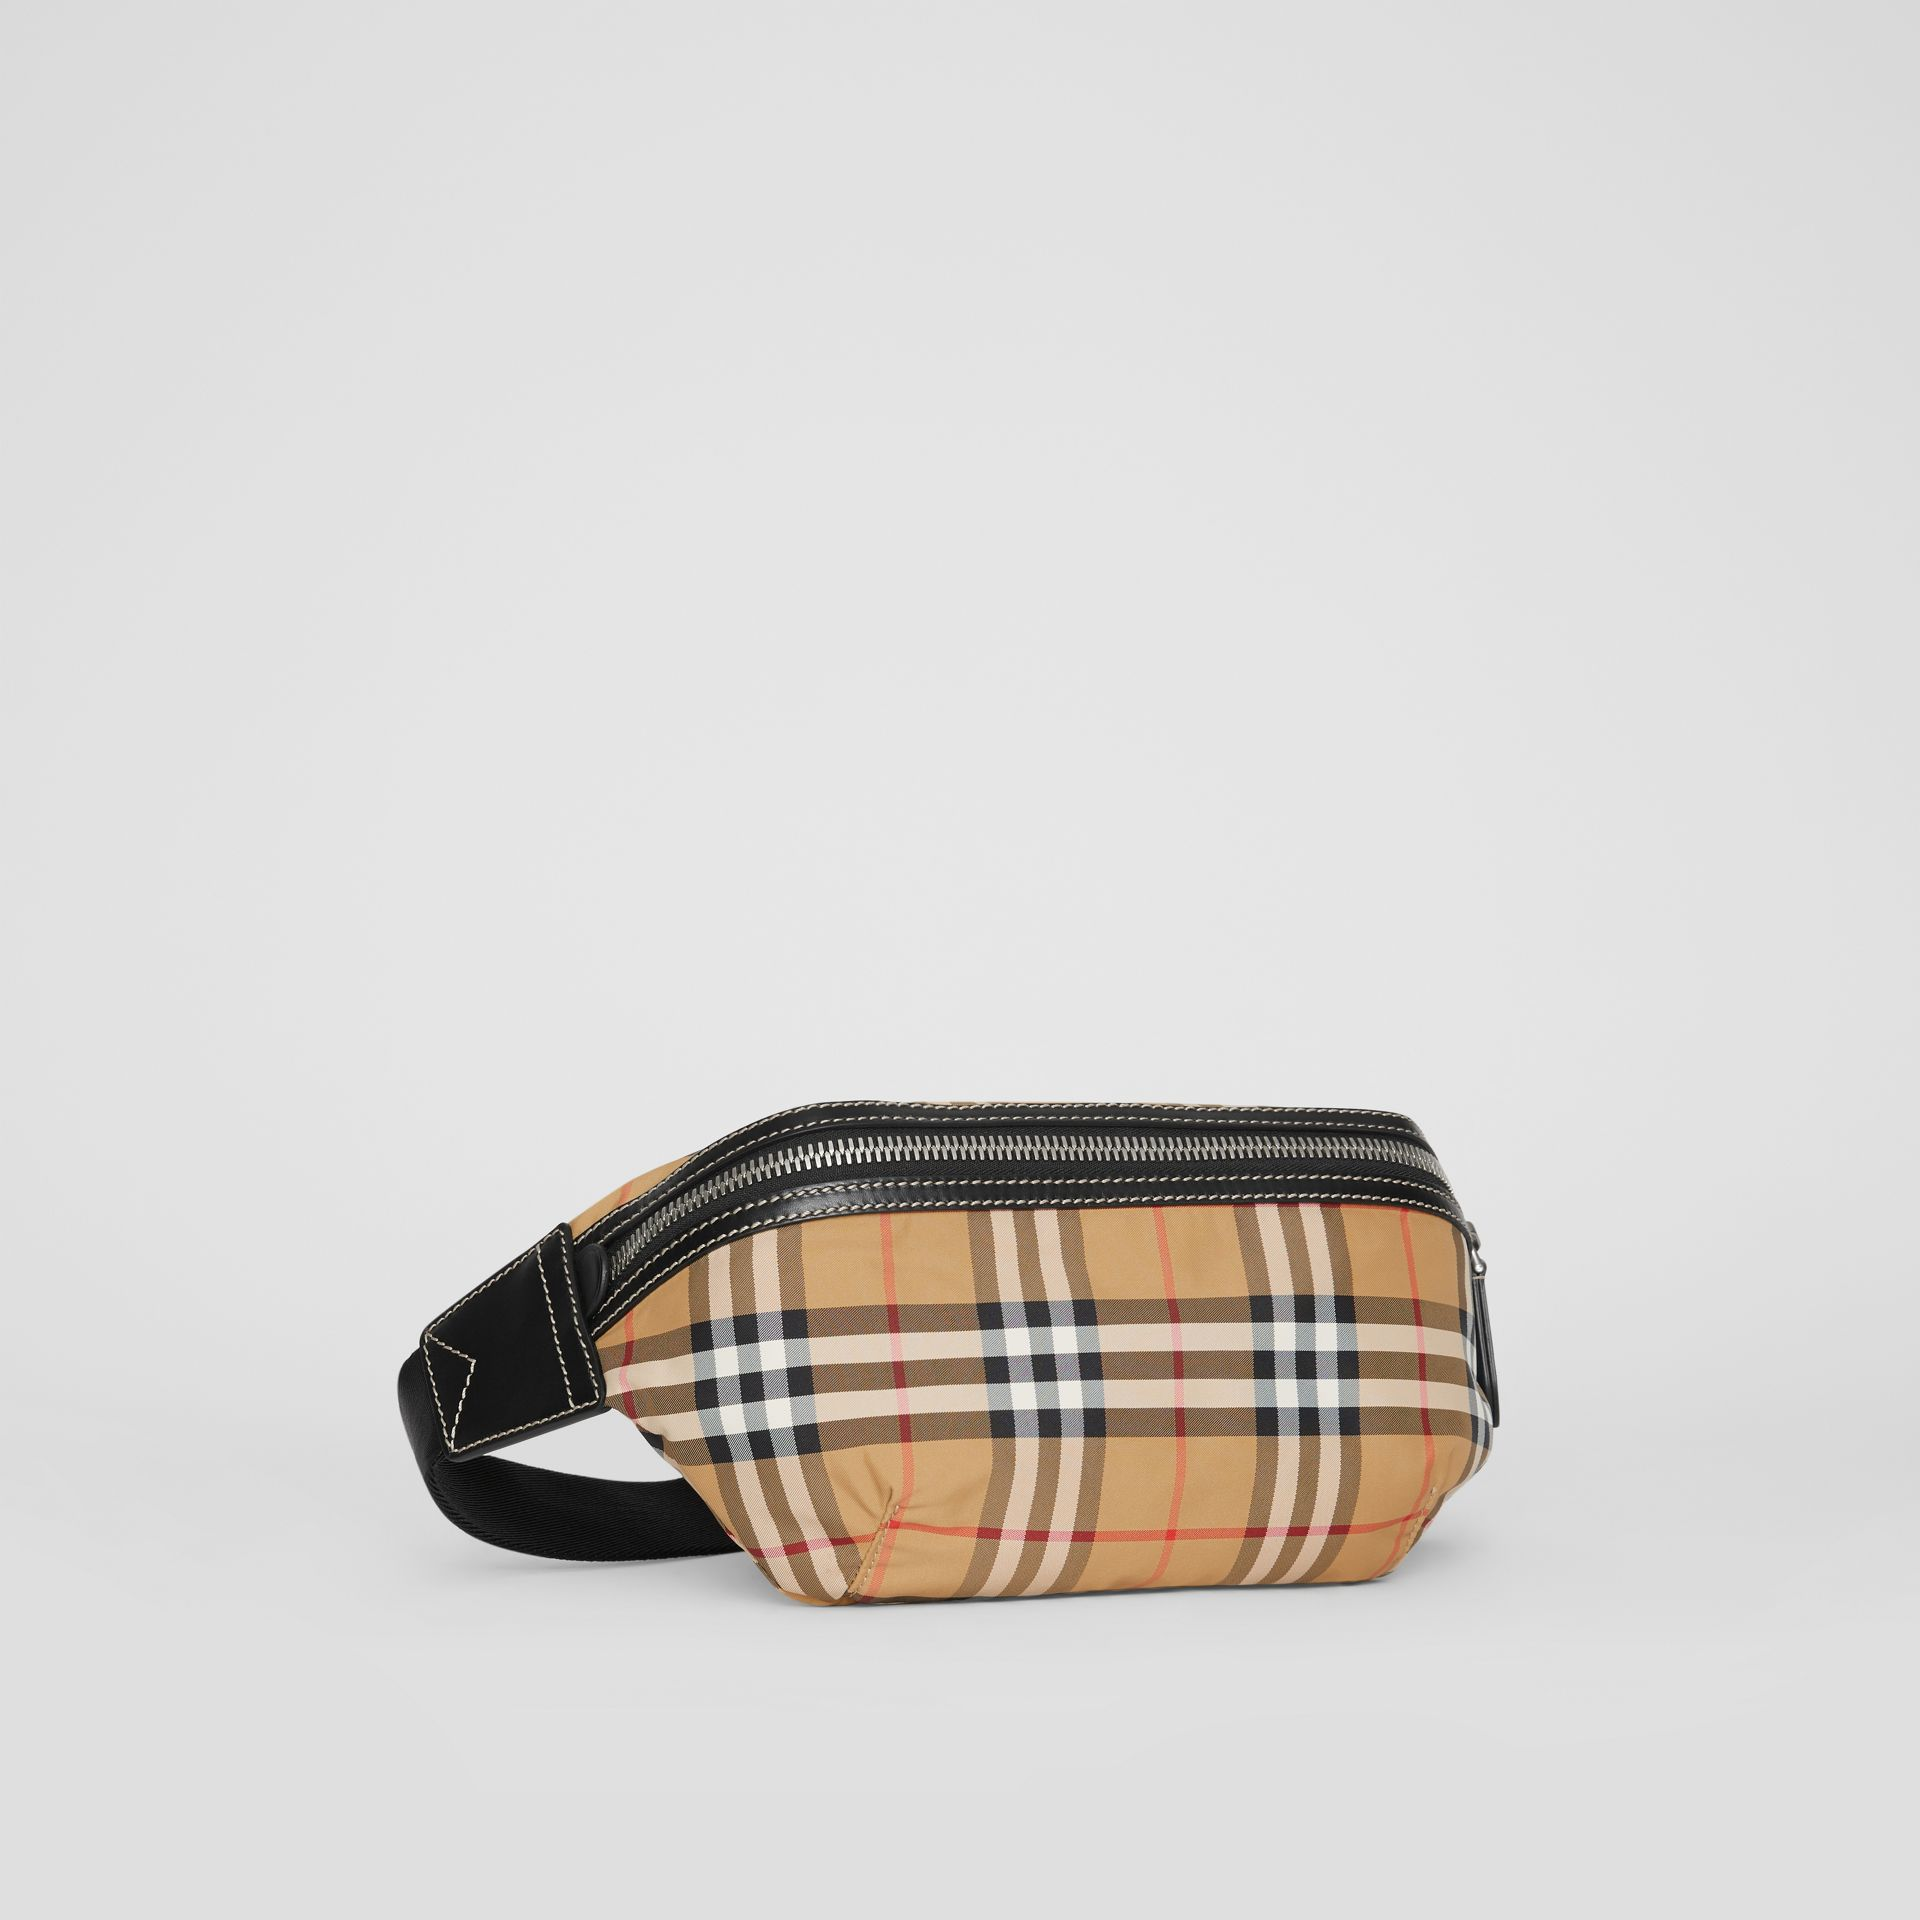 Medium Vintage Check Bum Bag in Antique Yellow | Burberry - gallery image 7